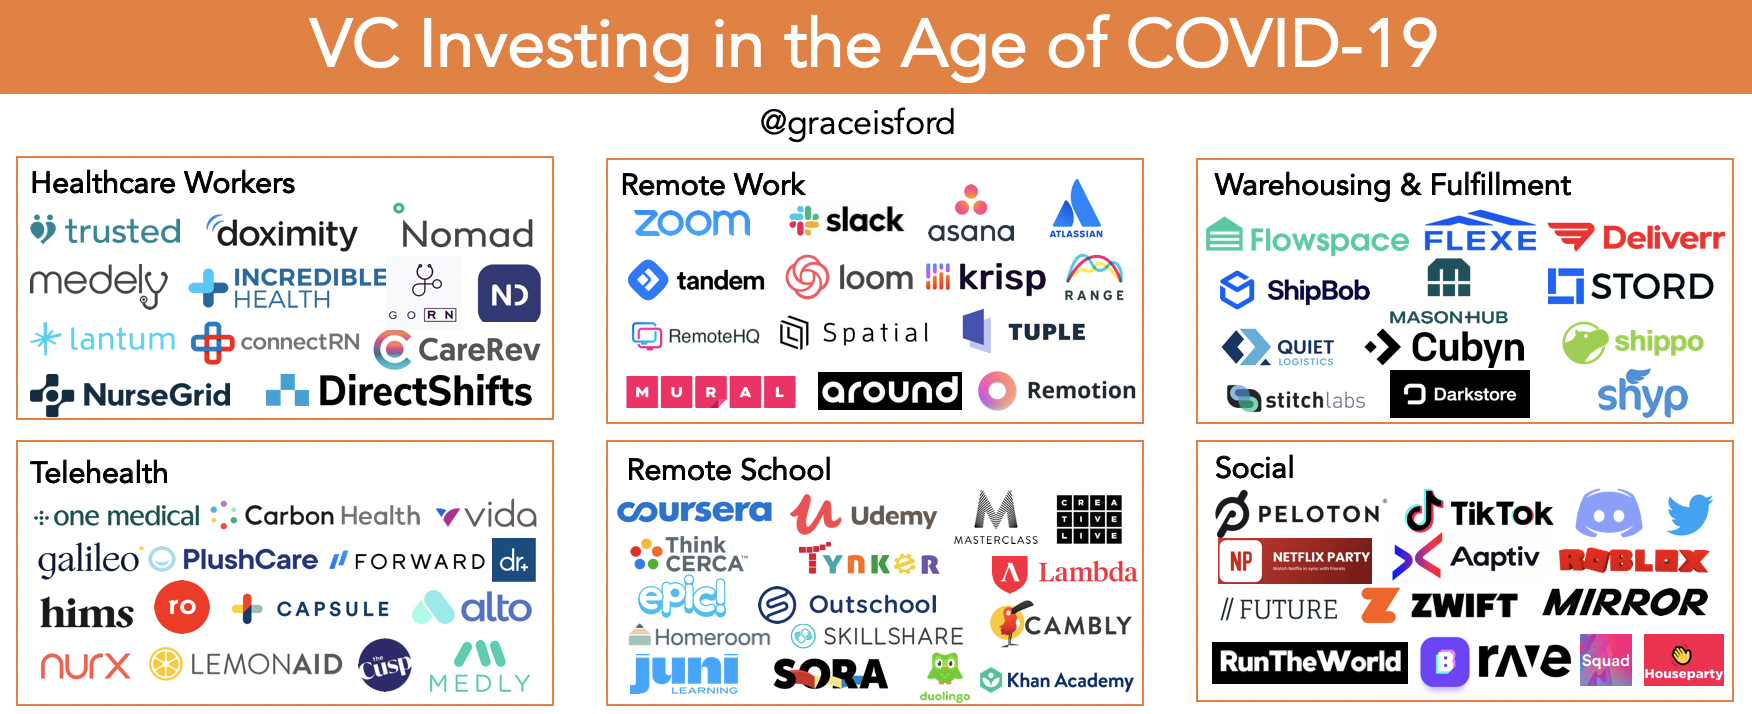 Startup logos including Zoom, Slack, Coursera, Peloton, and more on a chart titled VC Investing in the Age of Covid-19.